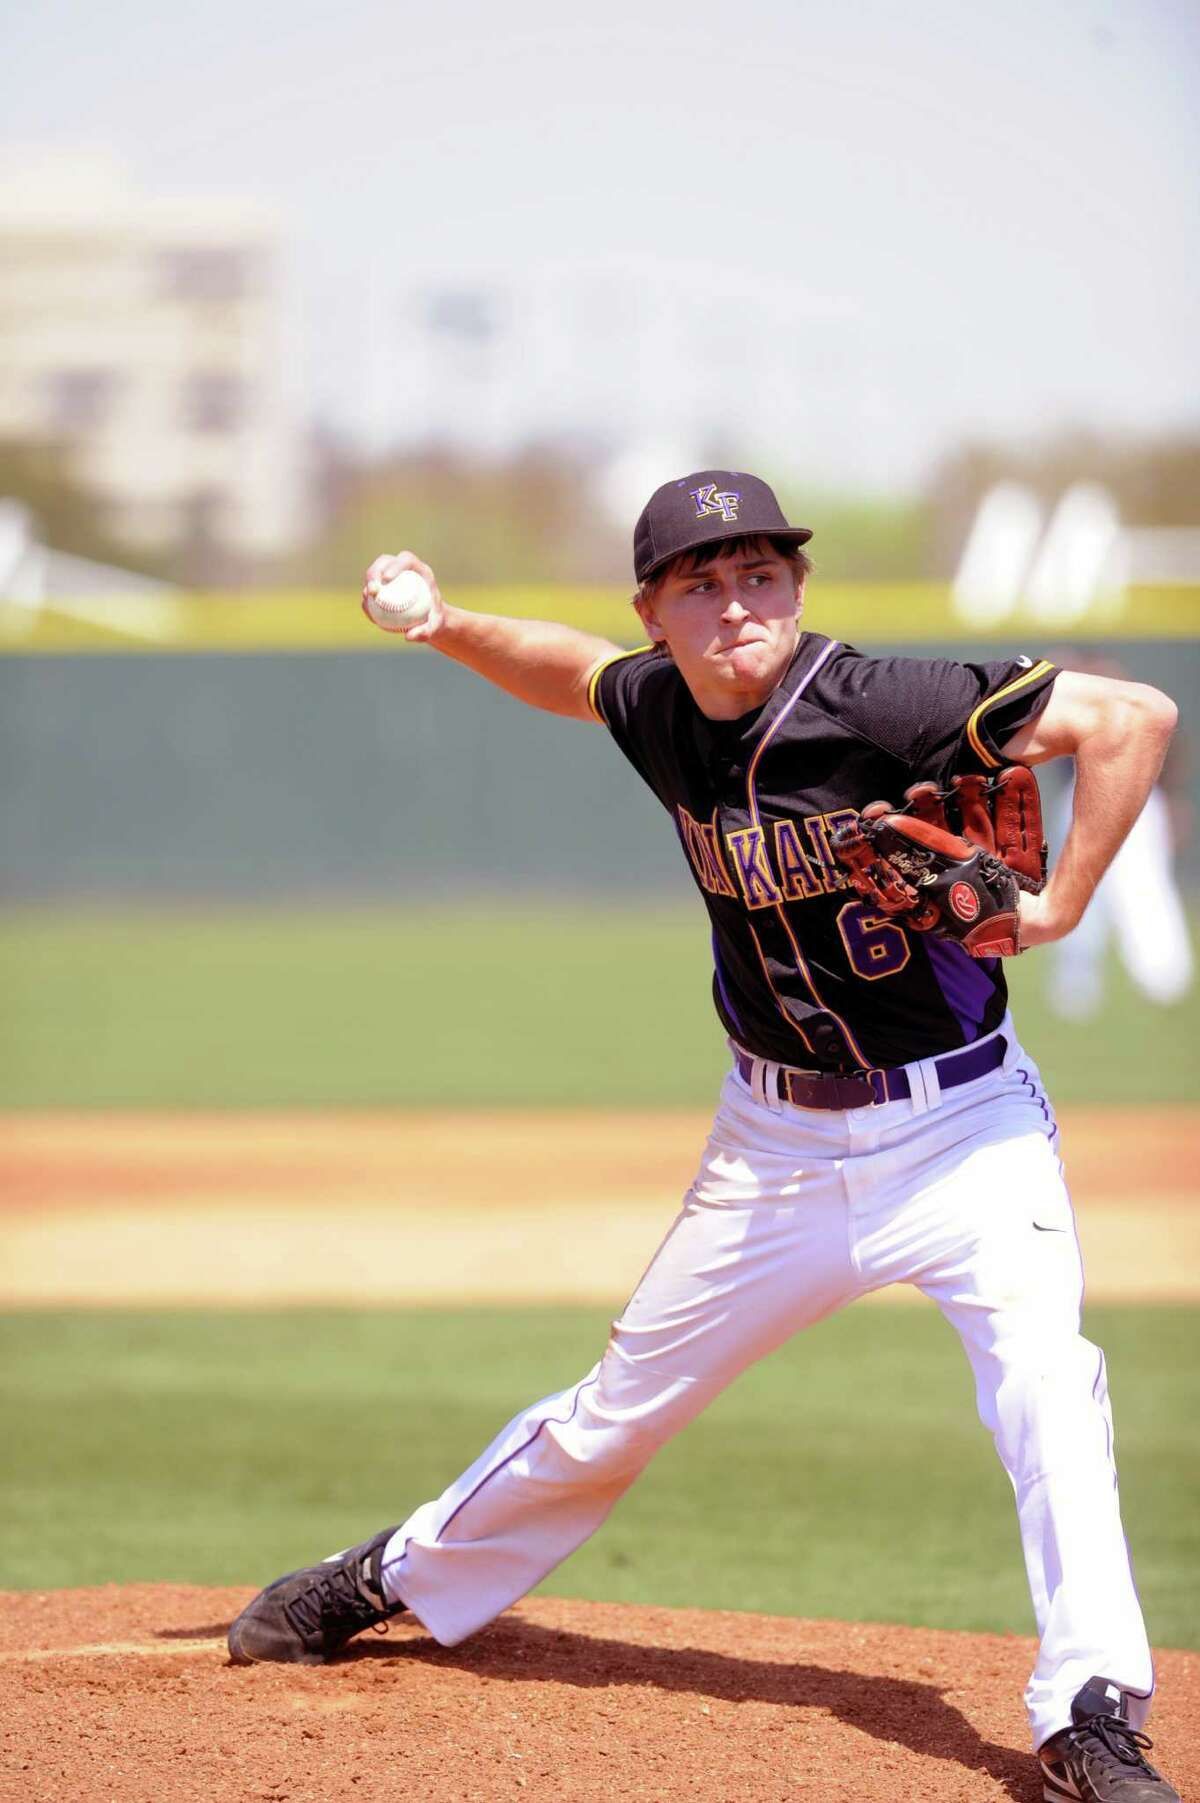 Kinkaid's Will Gaus was a key member of the Falcons' SPC-winning baseball squad, a final title that cemented Kinkaid winning the Athletic Directors' Cup again this season.